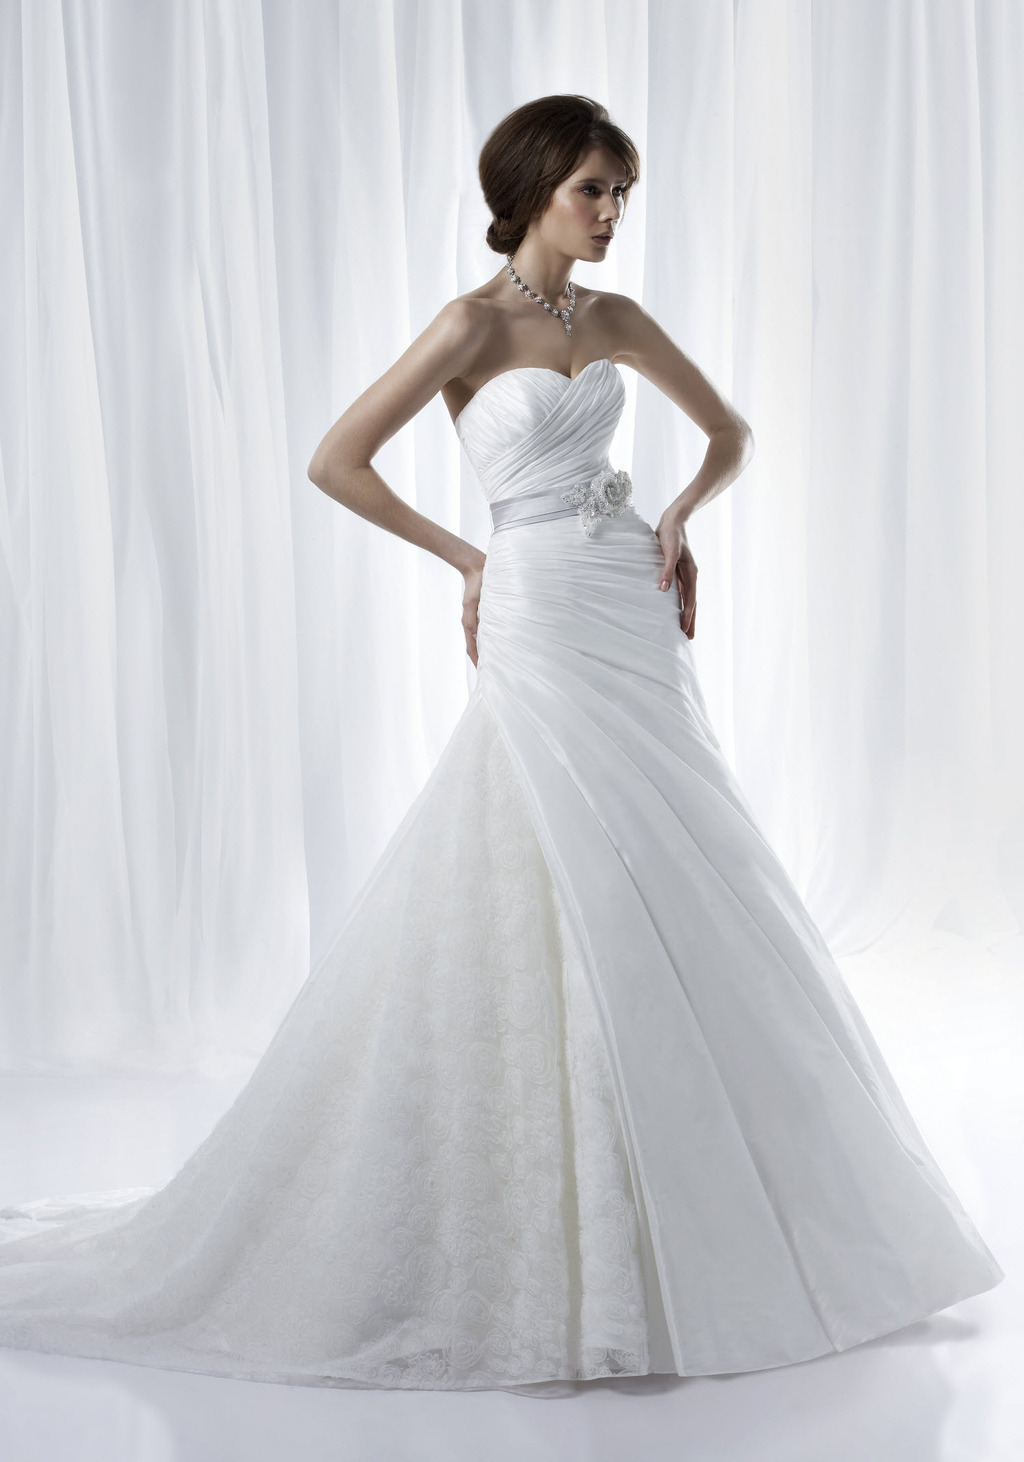 Spring-2012-wedding-dresses-a201a-anjolique-bridal-gown-strapless-a-line.full